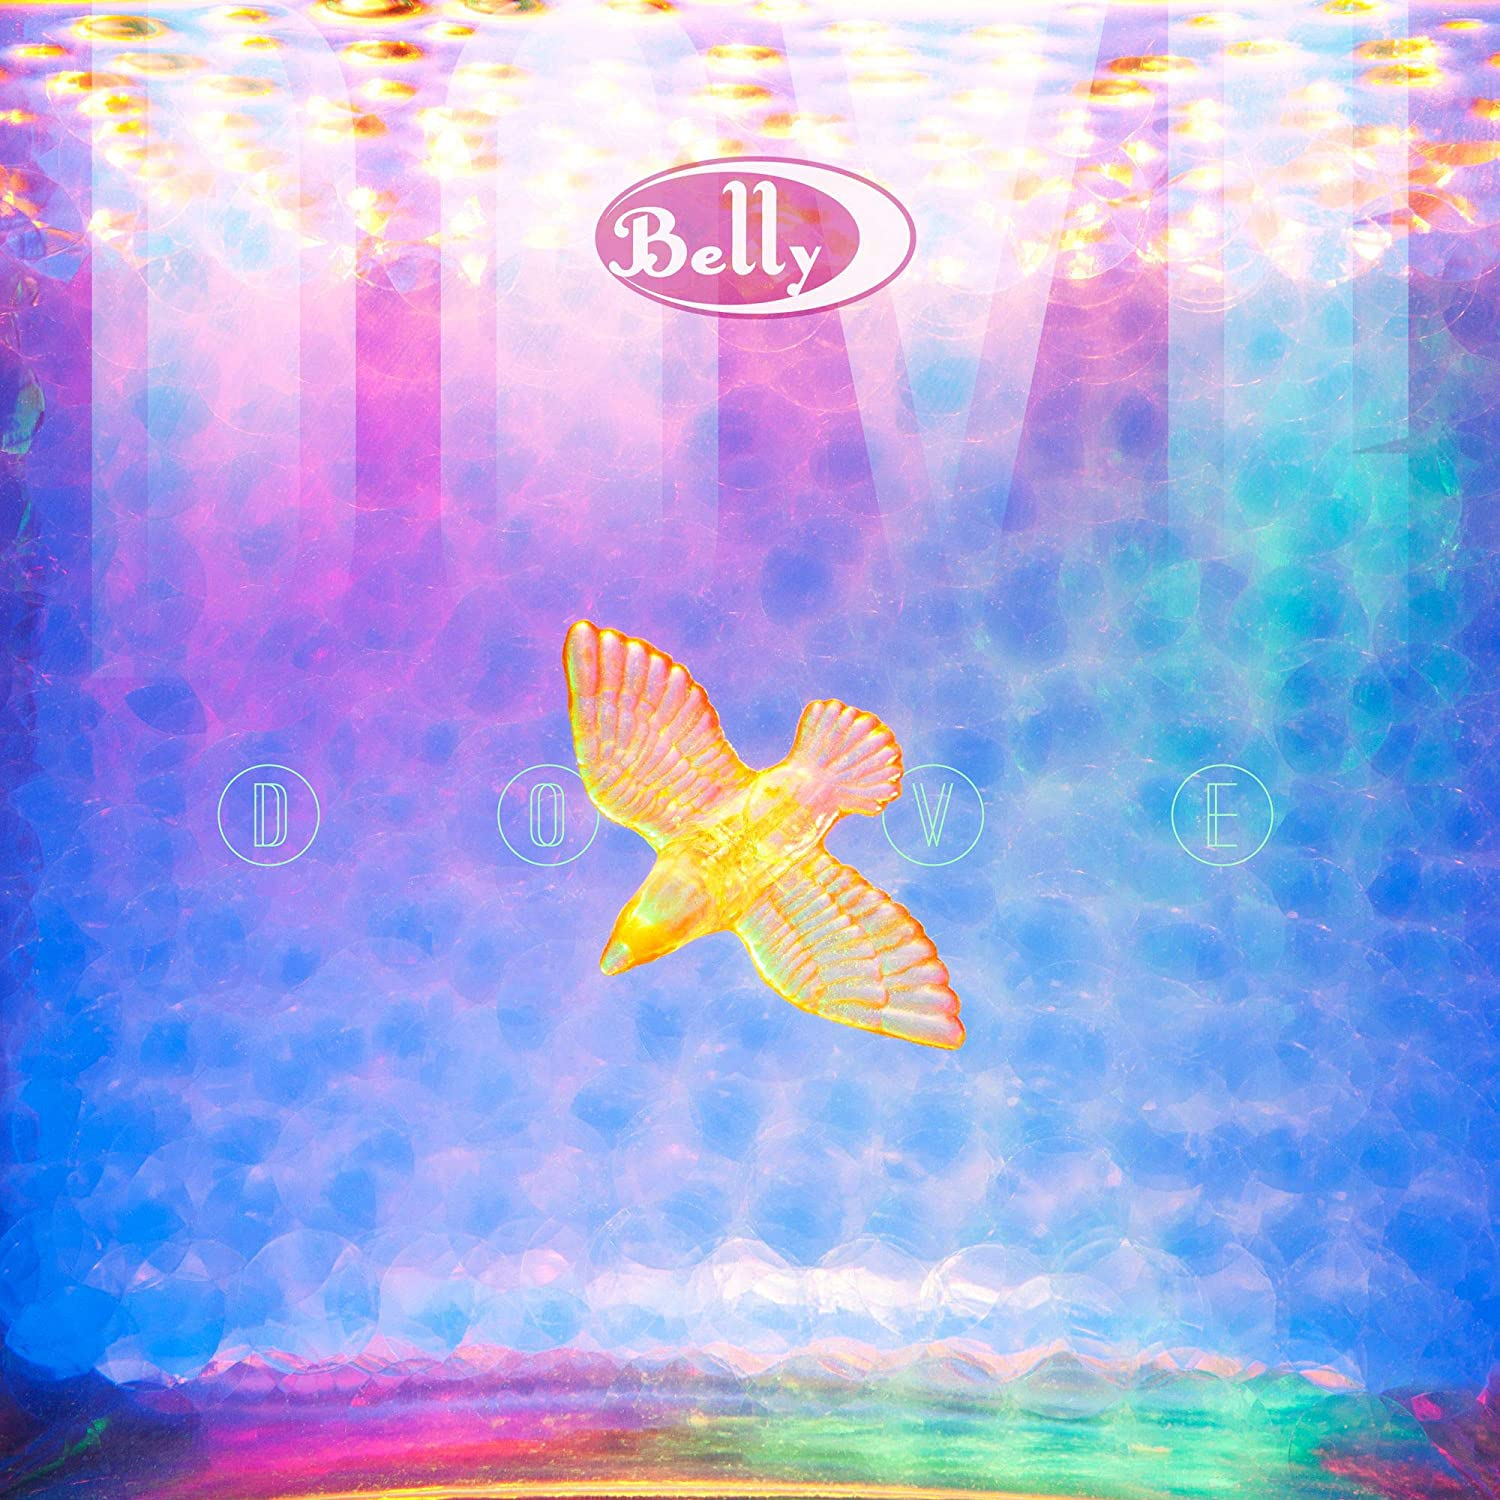 Belly/Dove [LP]